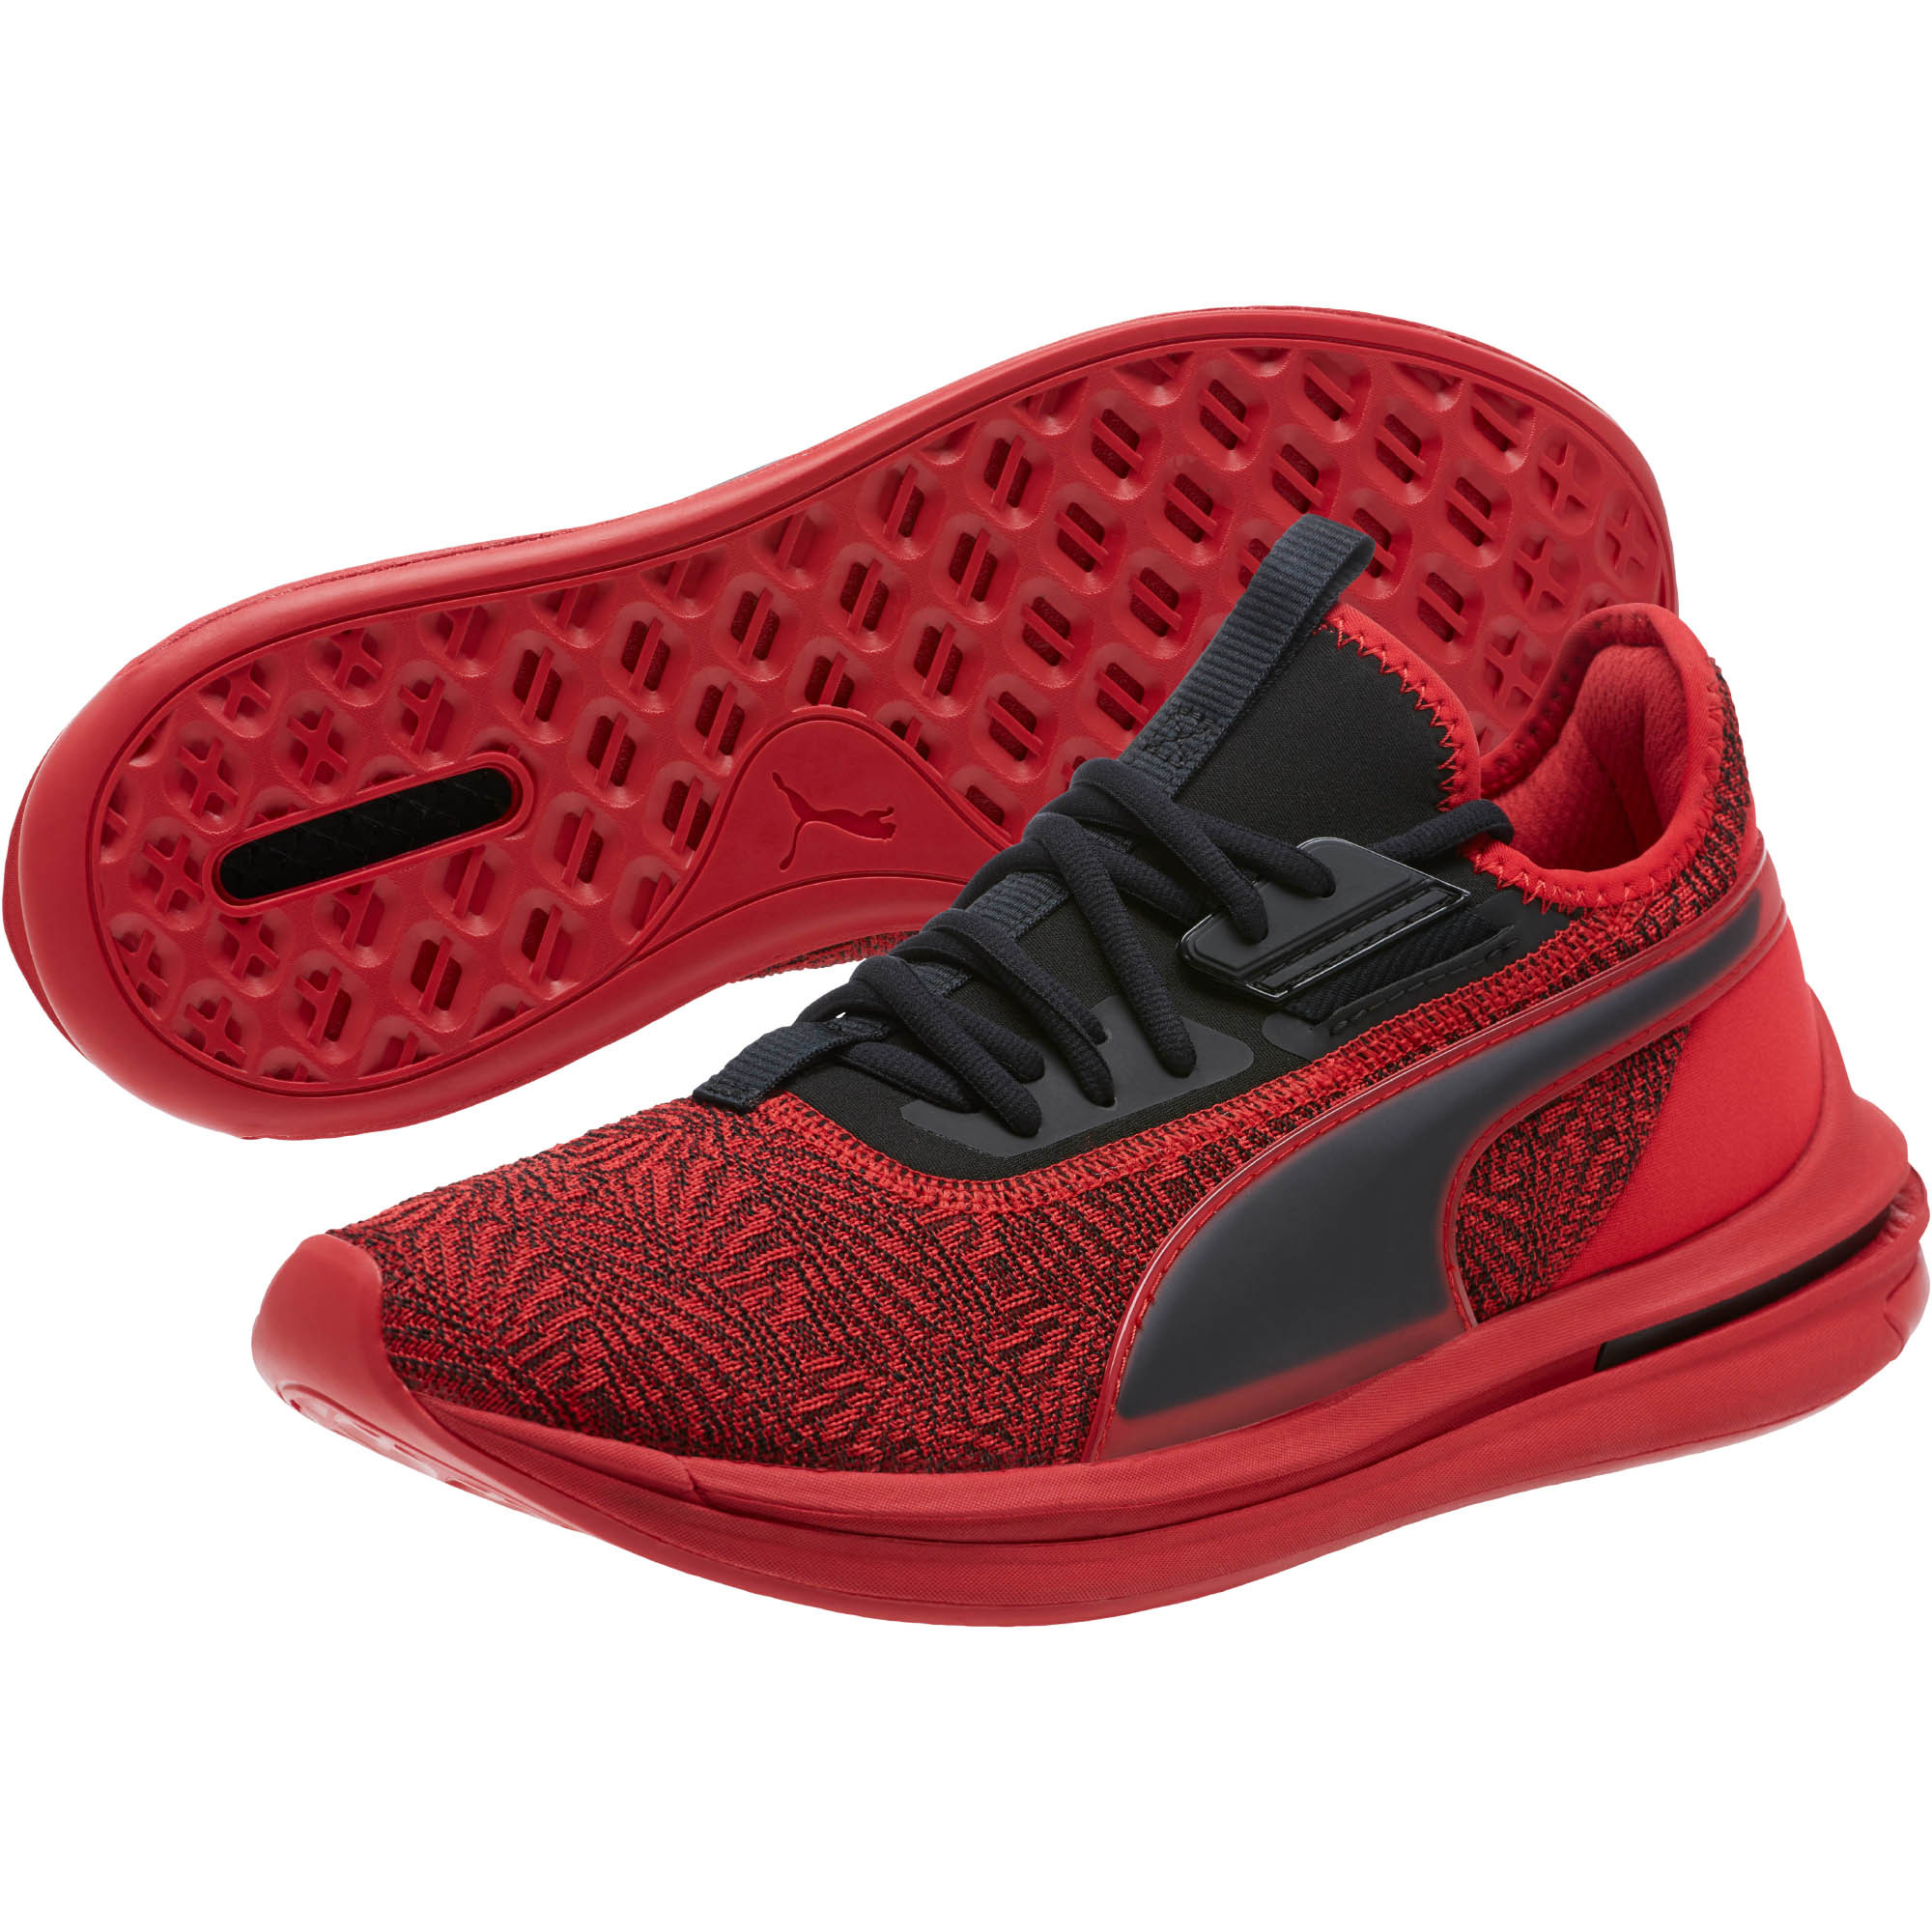 1d36a3931ea Official Puma Store  PUMA IGNITE Limitless SR-71 Running Shoes ...